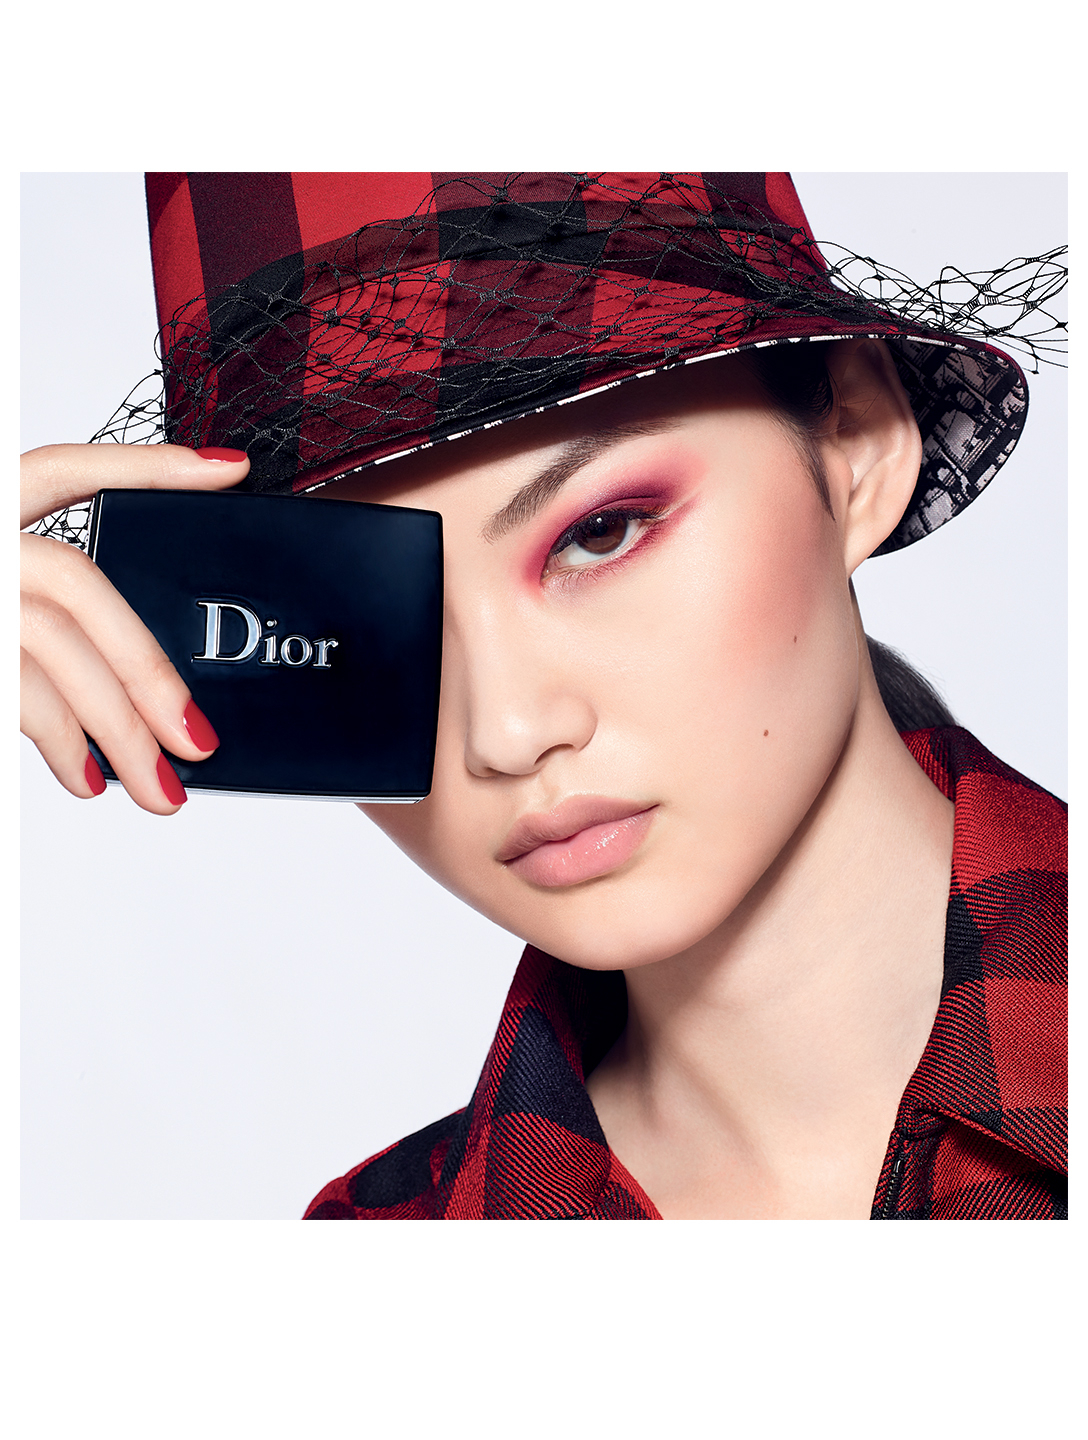 DIOR 5 Couleurs Couture Eyeshadow Palette Beauty Pink